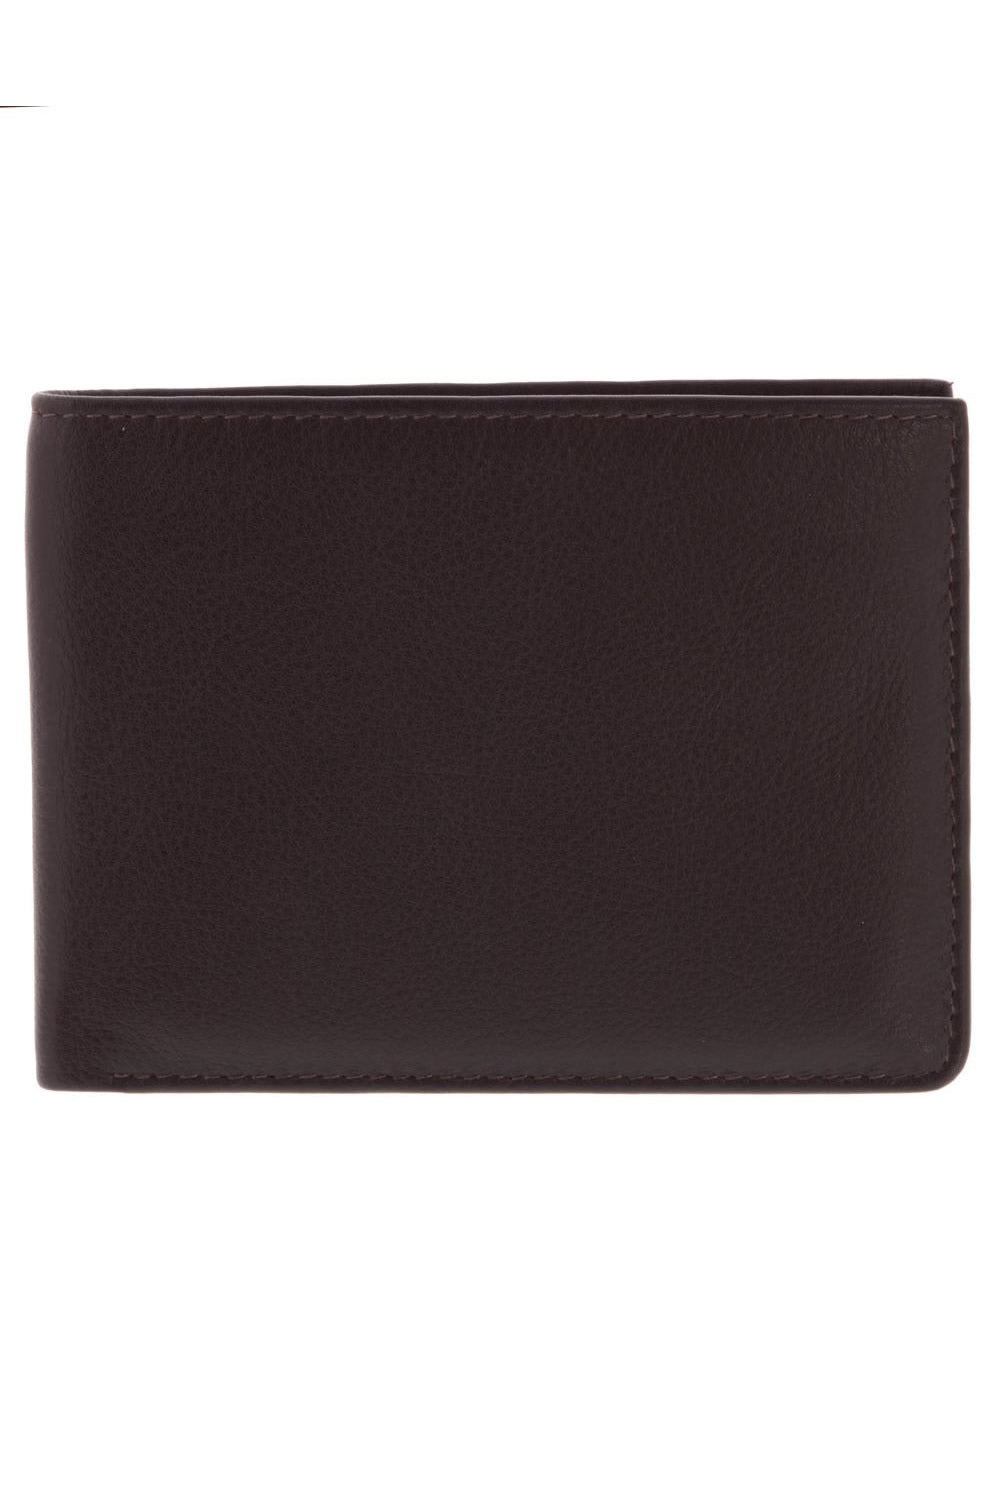 Cobb & Co Newport RFID Leather Wallet